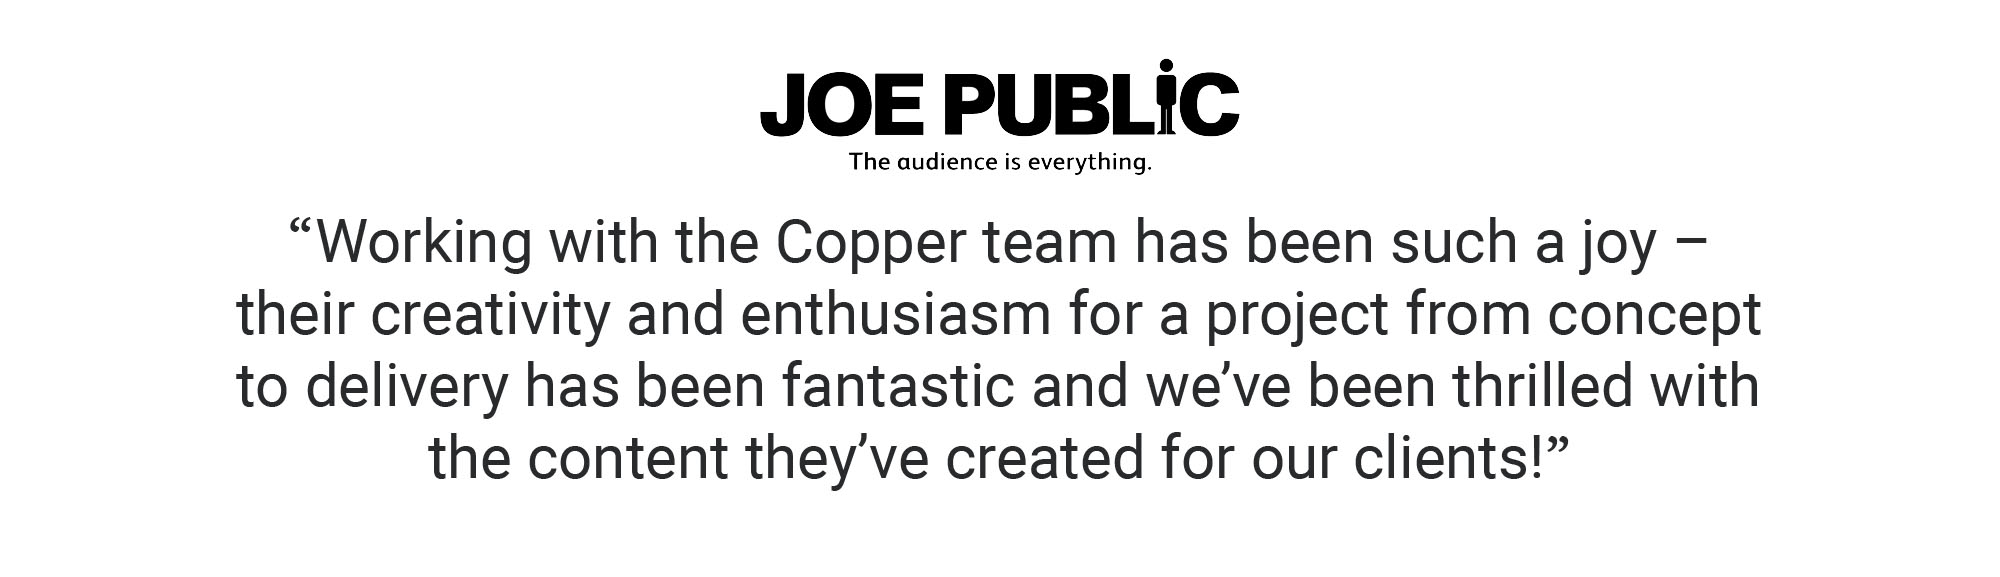 Joe Public Copper Productions Client Testimonial